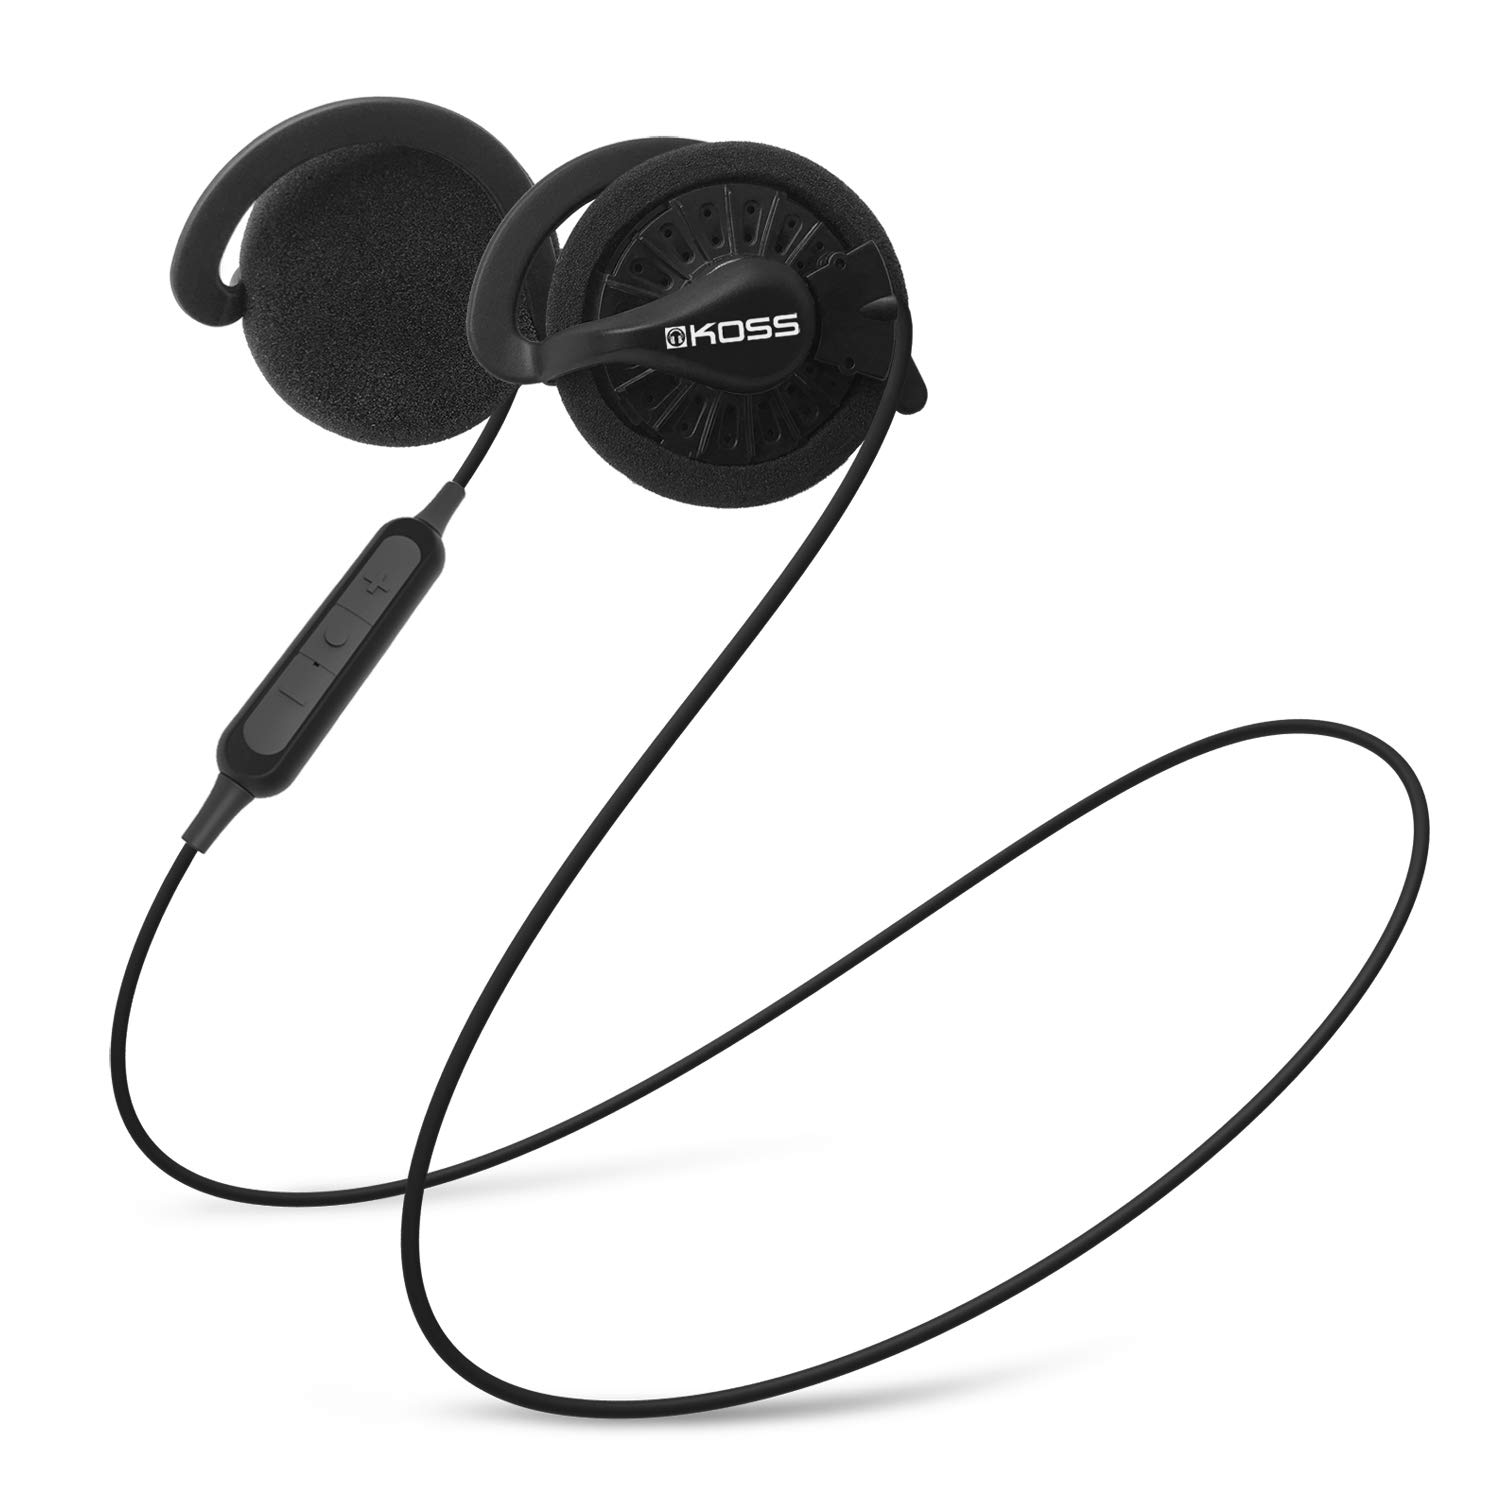 Koss KSC35 Wireless Bluetooth Ear Clip Headphones, in-Line Microphone with Remote, 6+ Hour Battery Life, Black